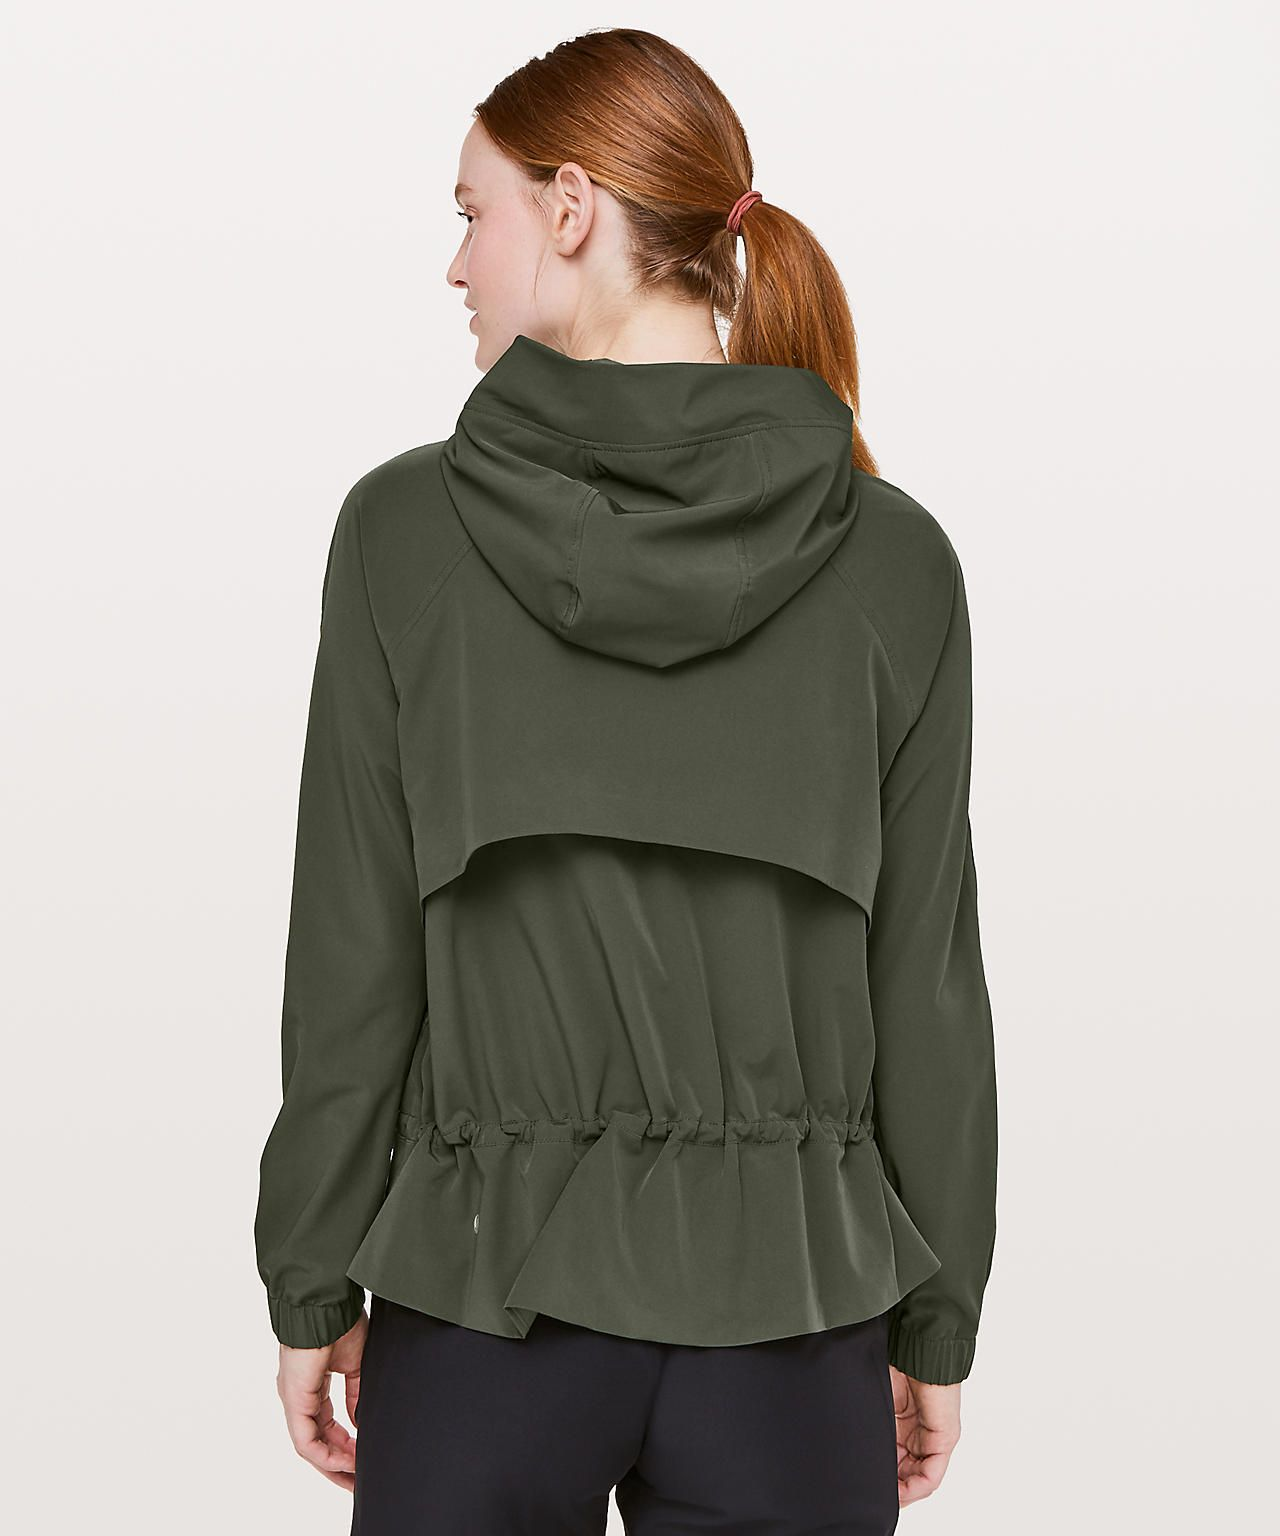 ac40c973505 Lululemon Pack It Up Jacket | Workout Gear | Outerwear jackets ...